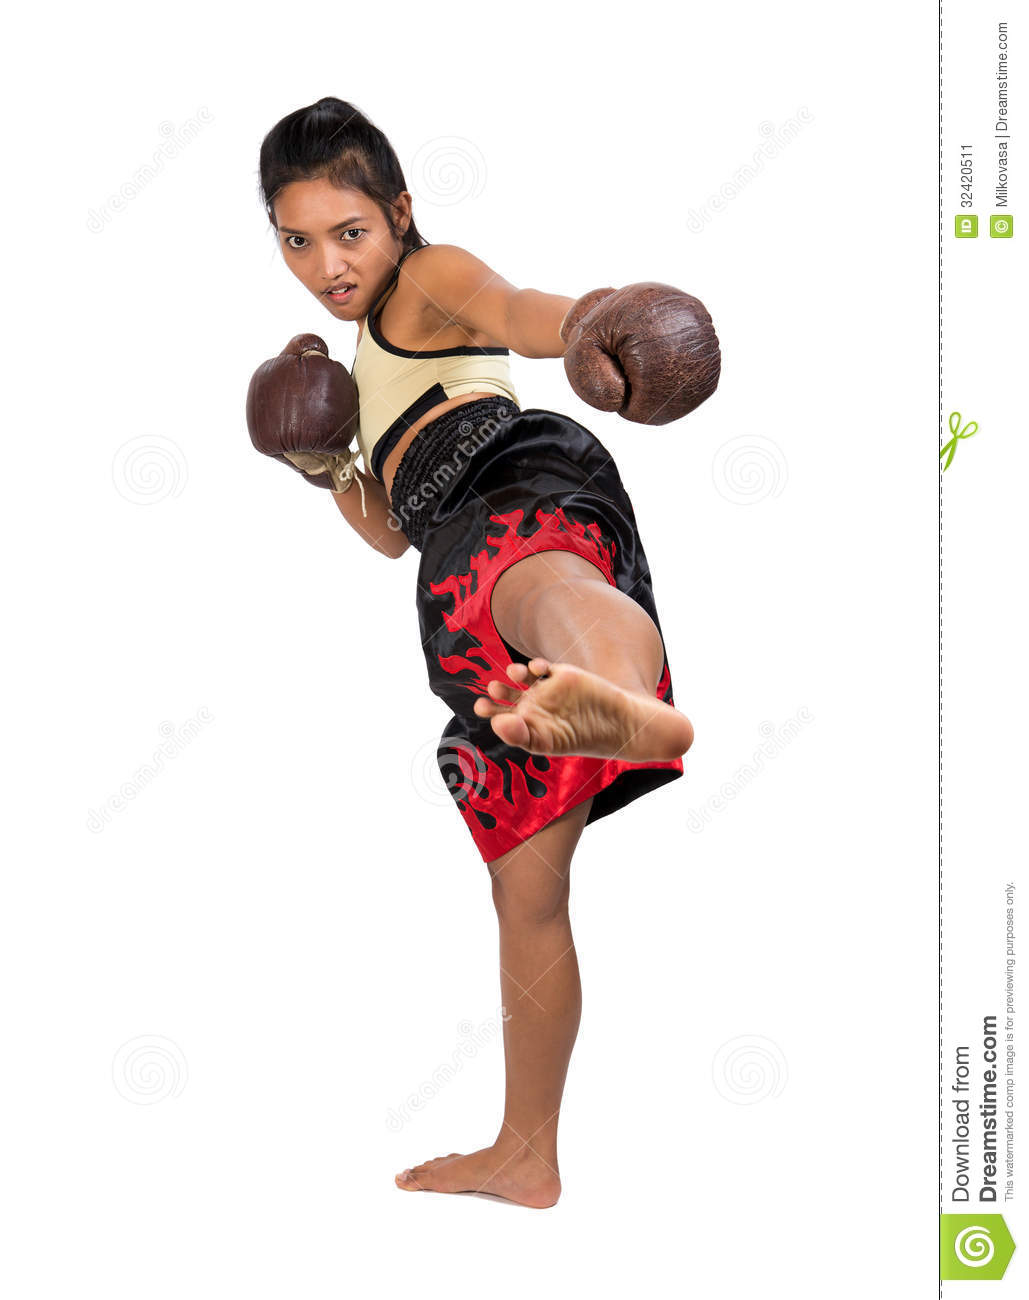 Muay Thai stock image. Image of conflict, adult, anger ...